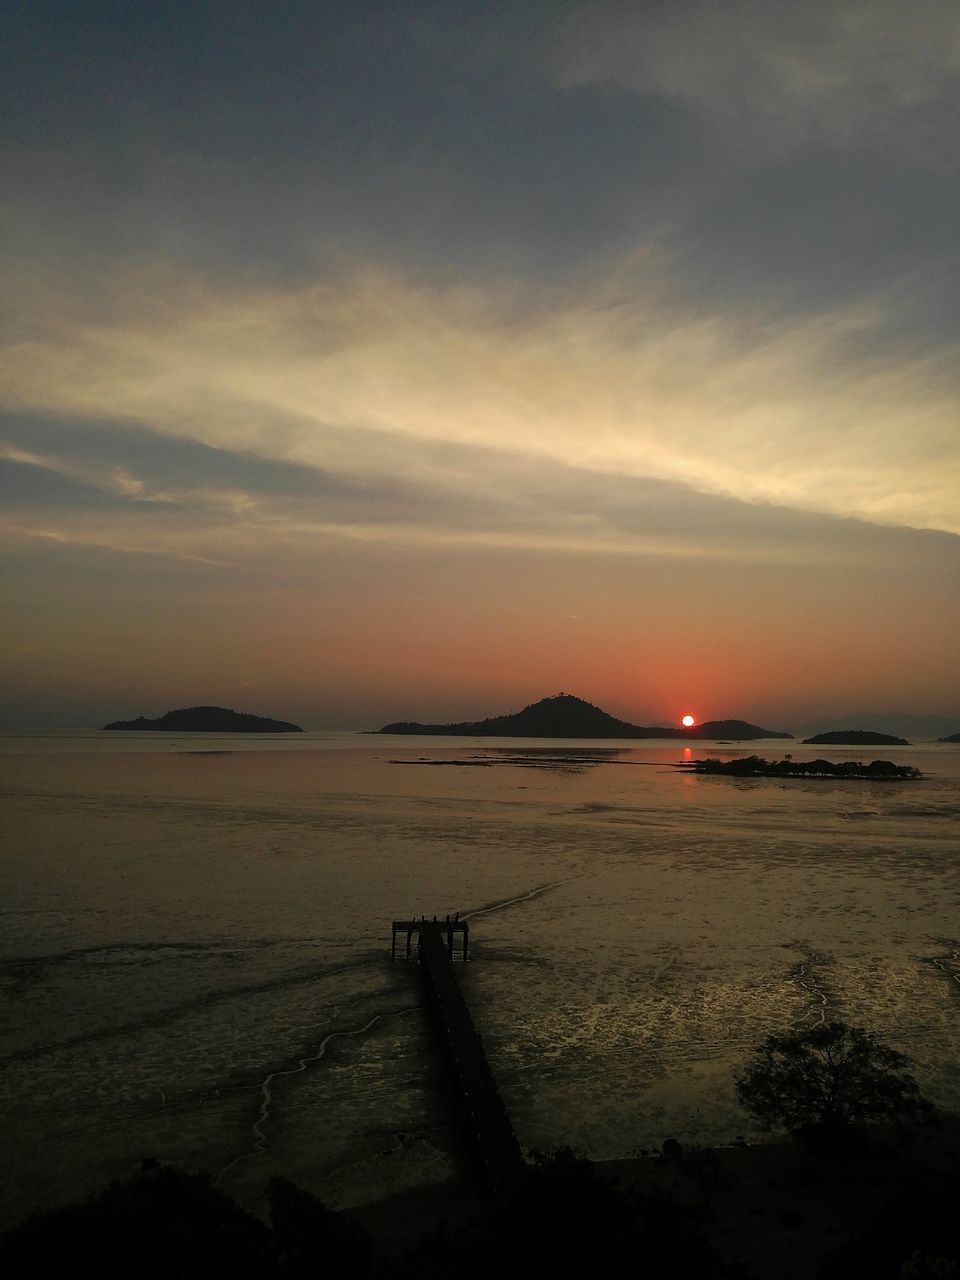 sunset, sky, beauty in nature, scenics, nature, water, tranquil scene, sea, tranquility, no people, cloud - sky, outdoors, beach, horizon over water, day